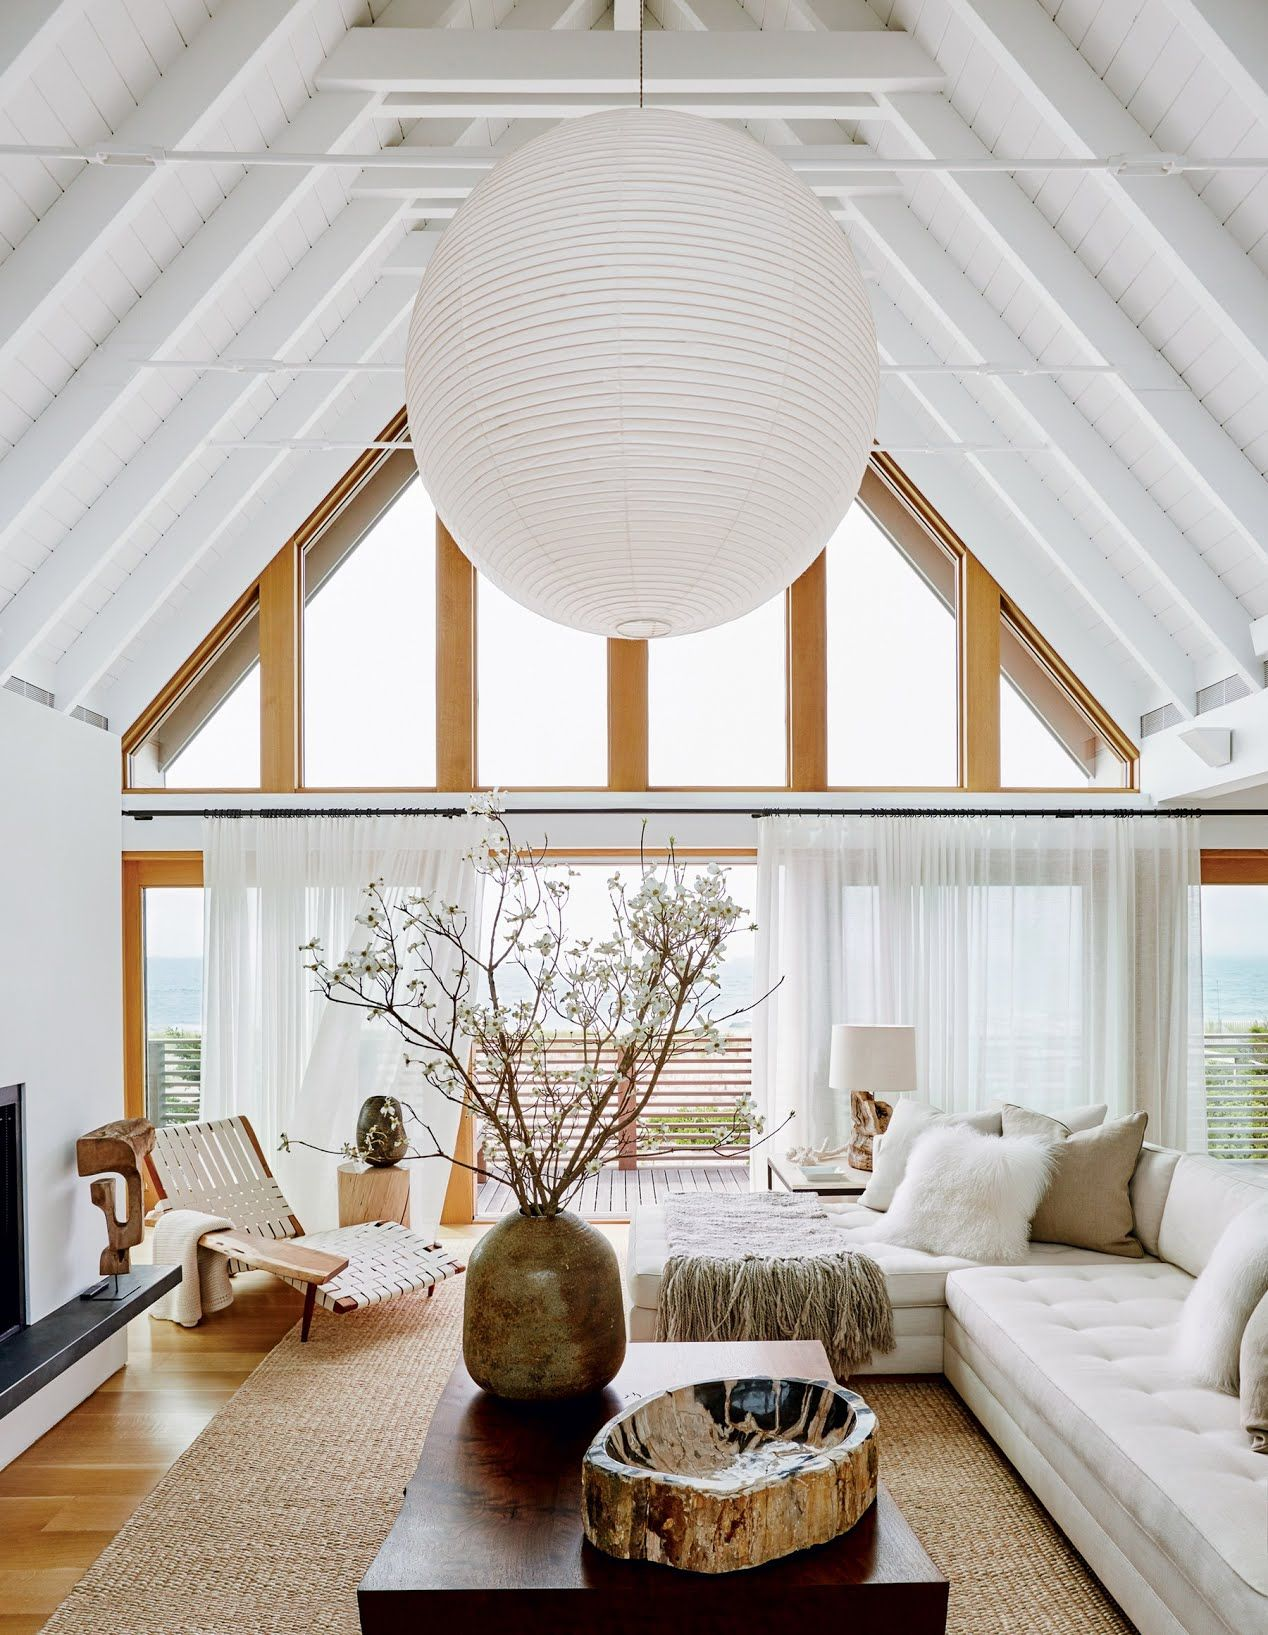 3 Home Decor Trends For Spring Brittany Stager: Shop Michael Kors's Serene Beachside Home